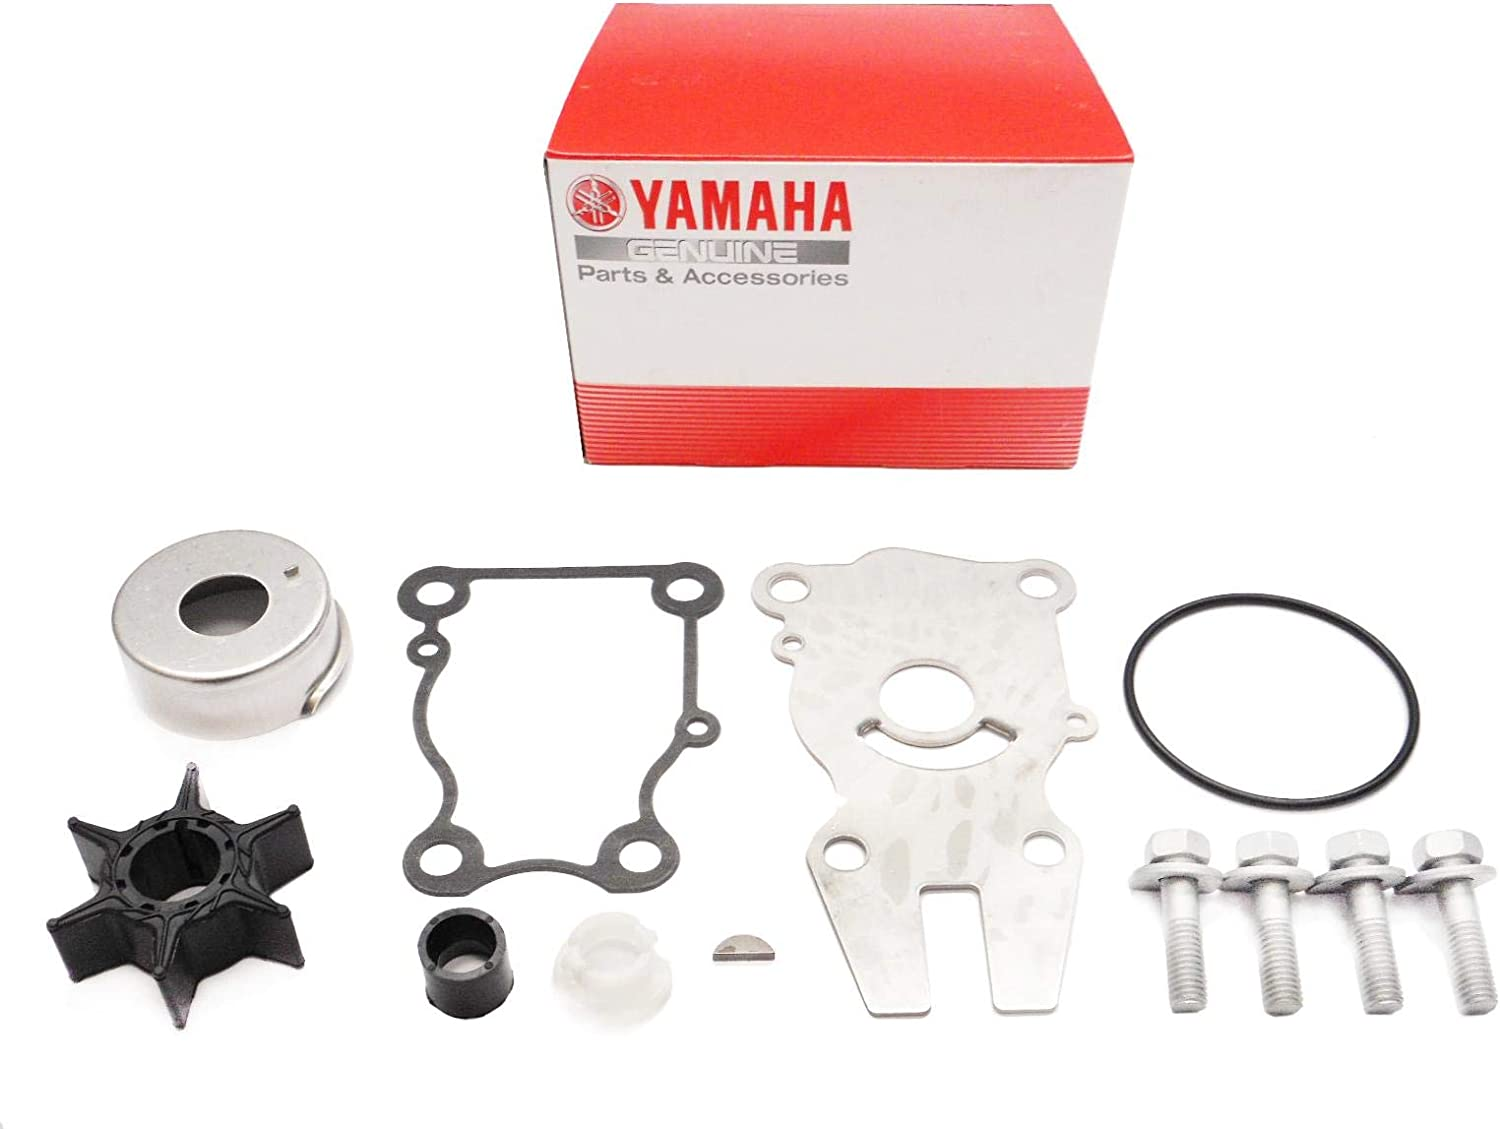 Yamaha Outboard OEM Water Pump Impeller Repair Kit 63D-W0078-01-00 63DW00780100